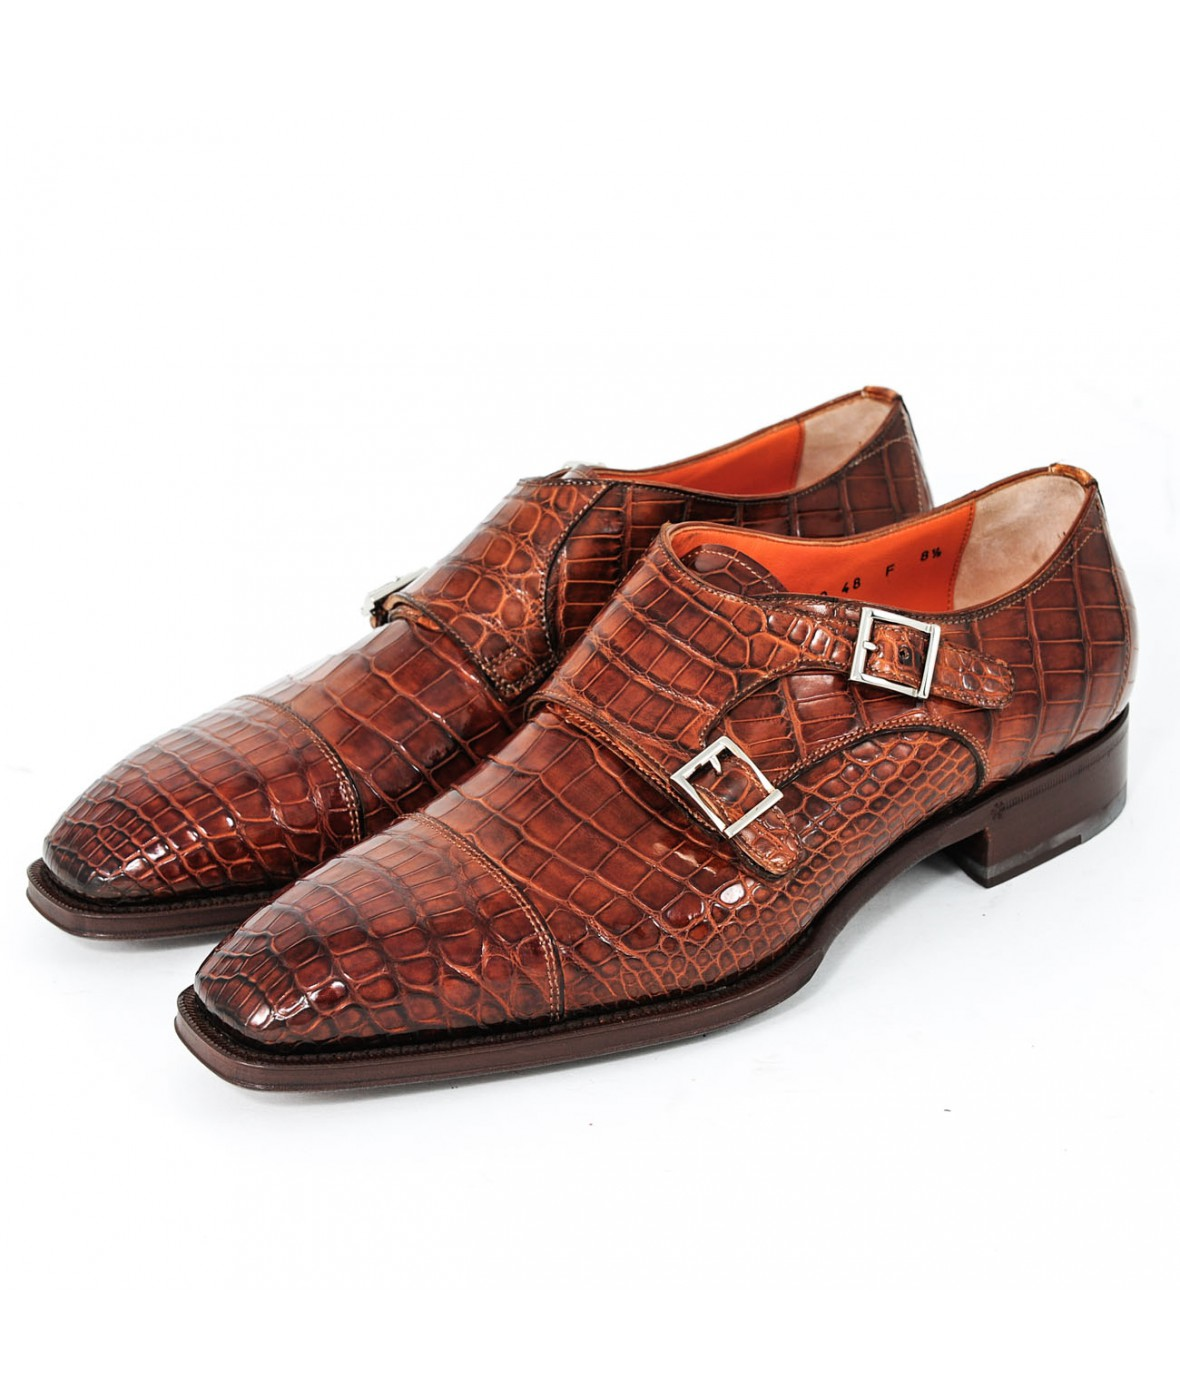 Santoni Croco Limited Alonso (22167)